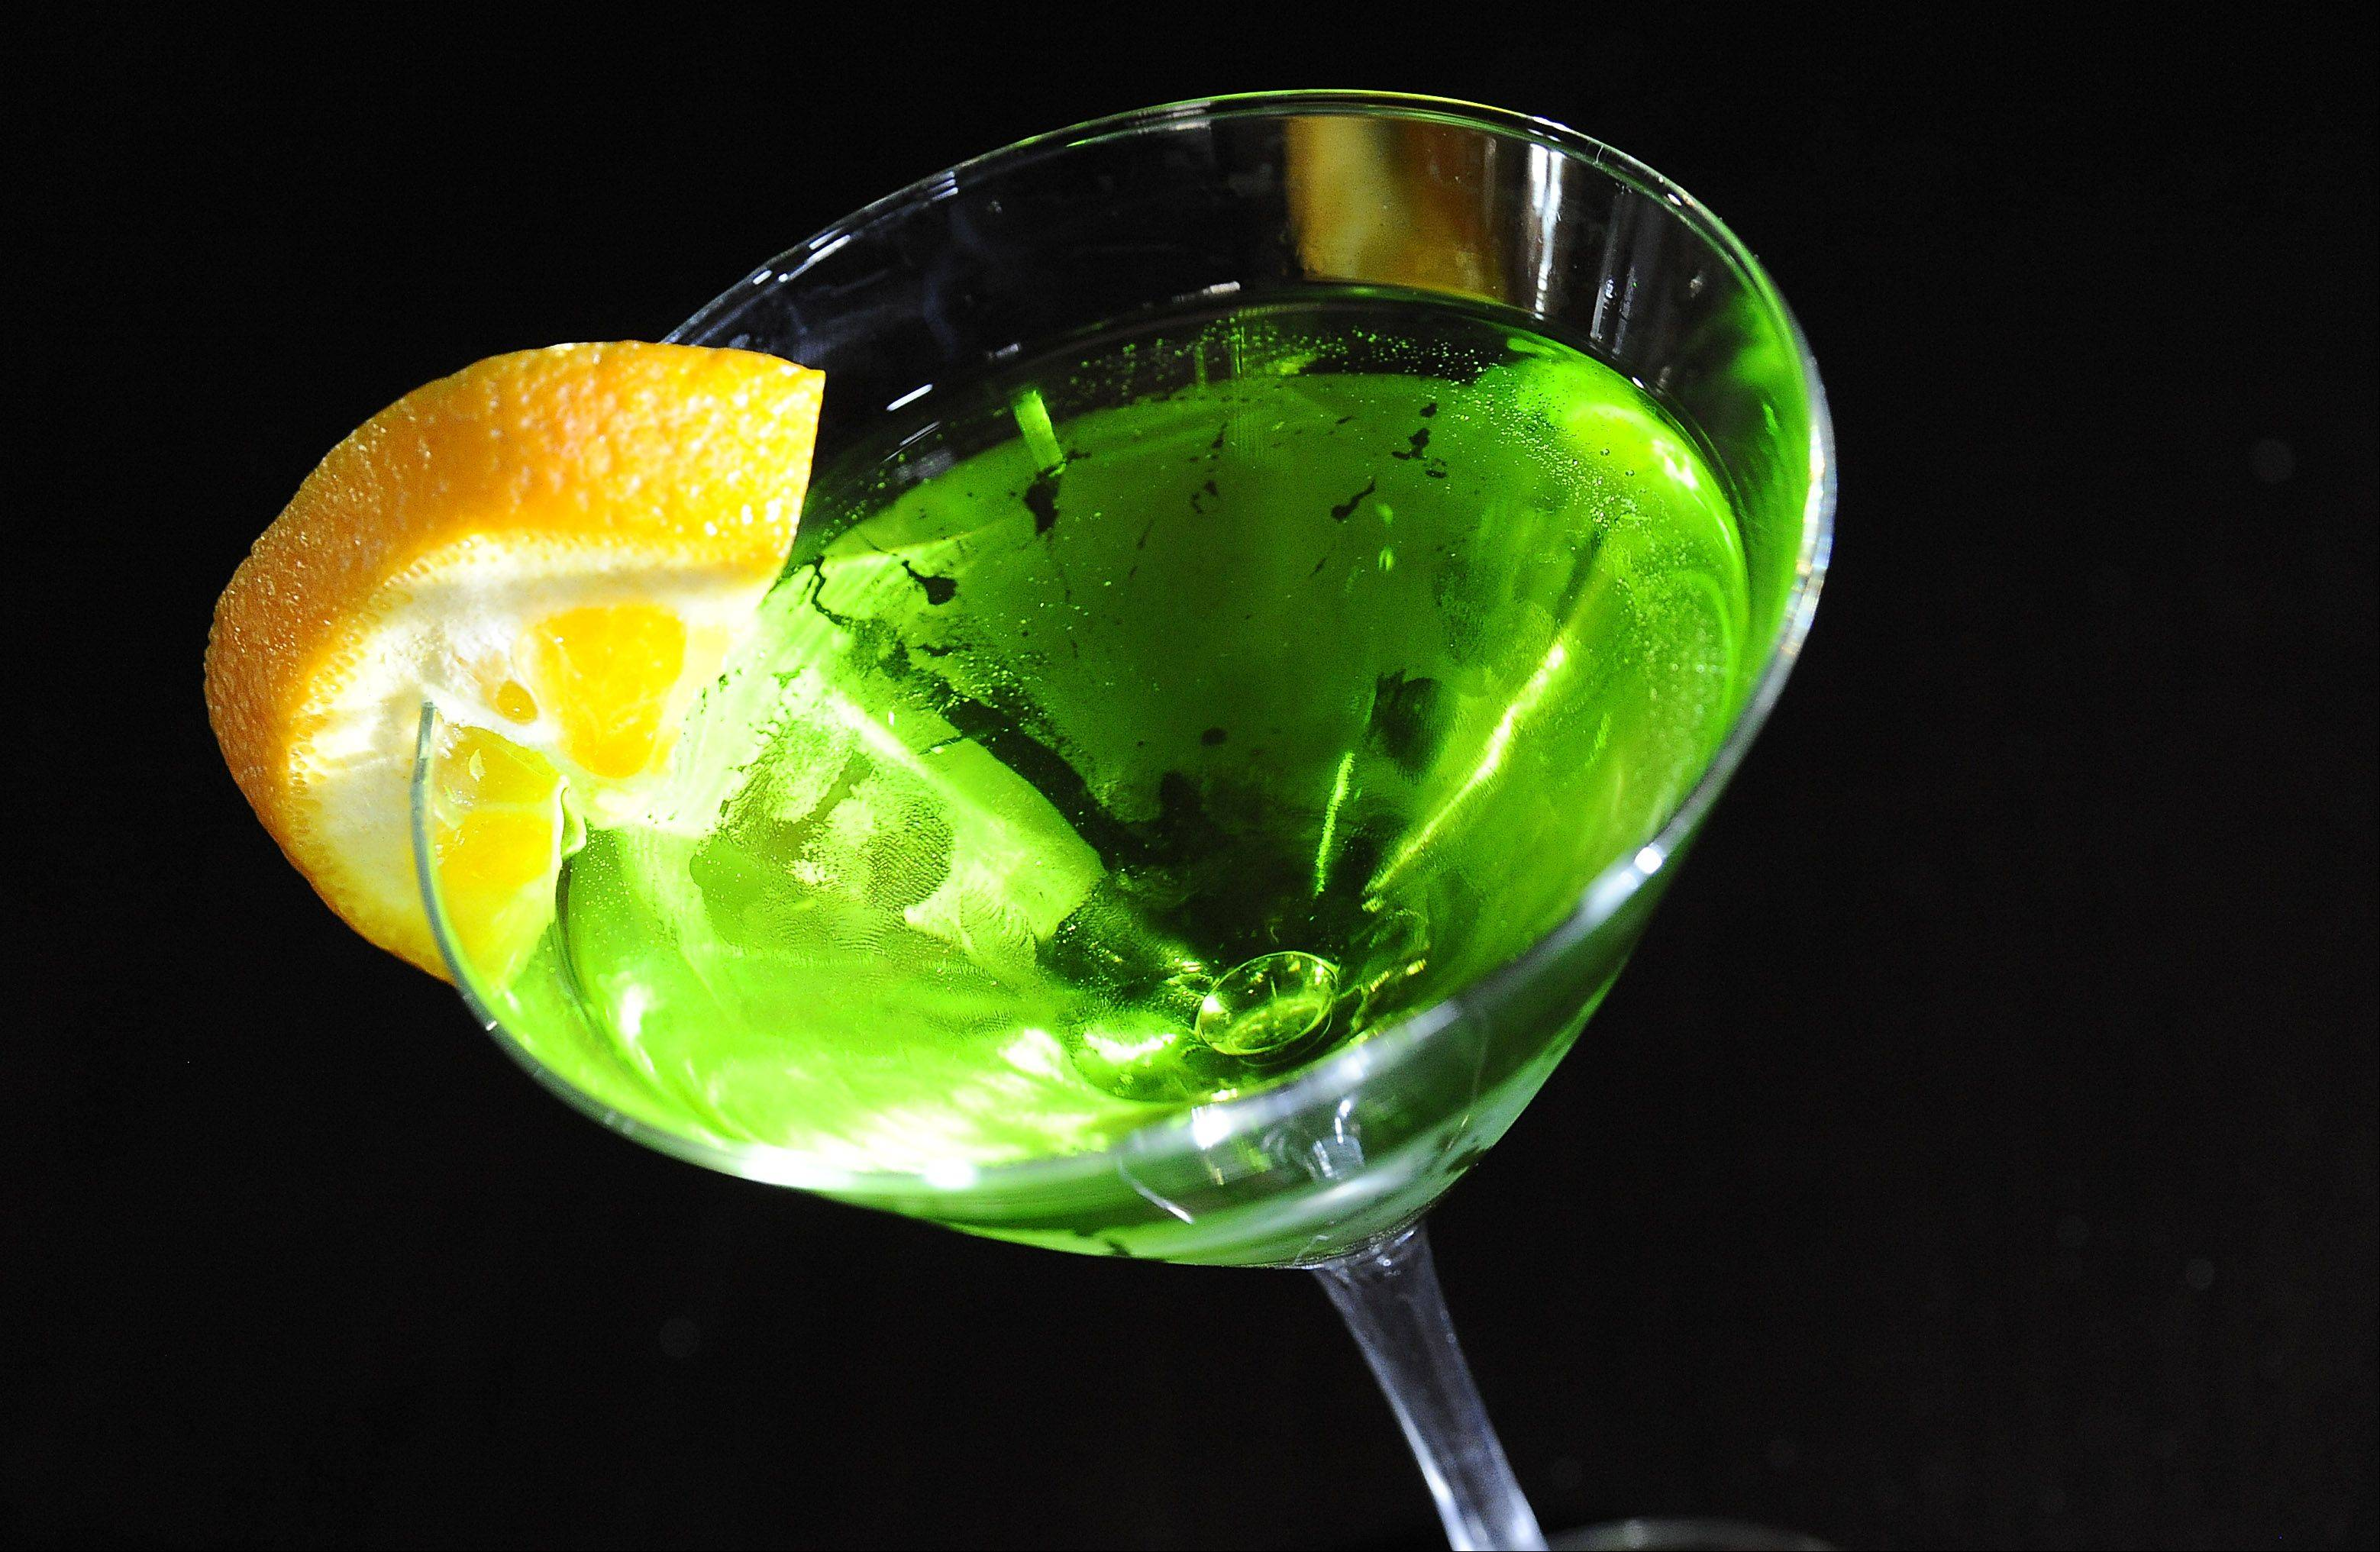 The Caribbean martini is a cool summer drink at Wickets Bar and Grill in Schaumburg.